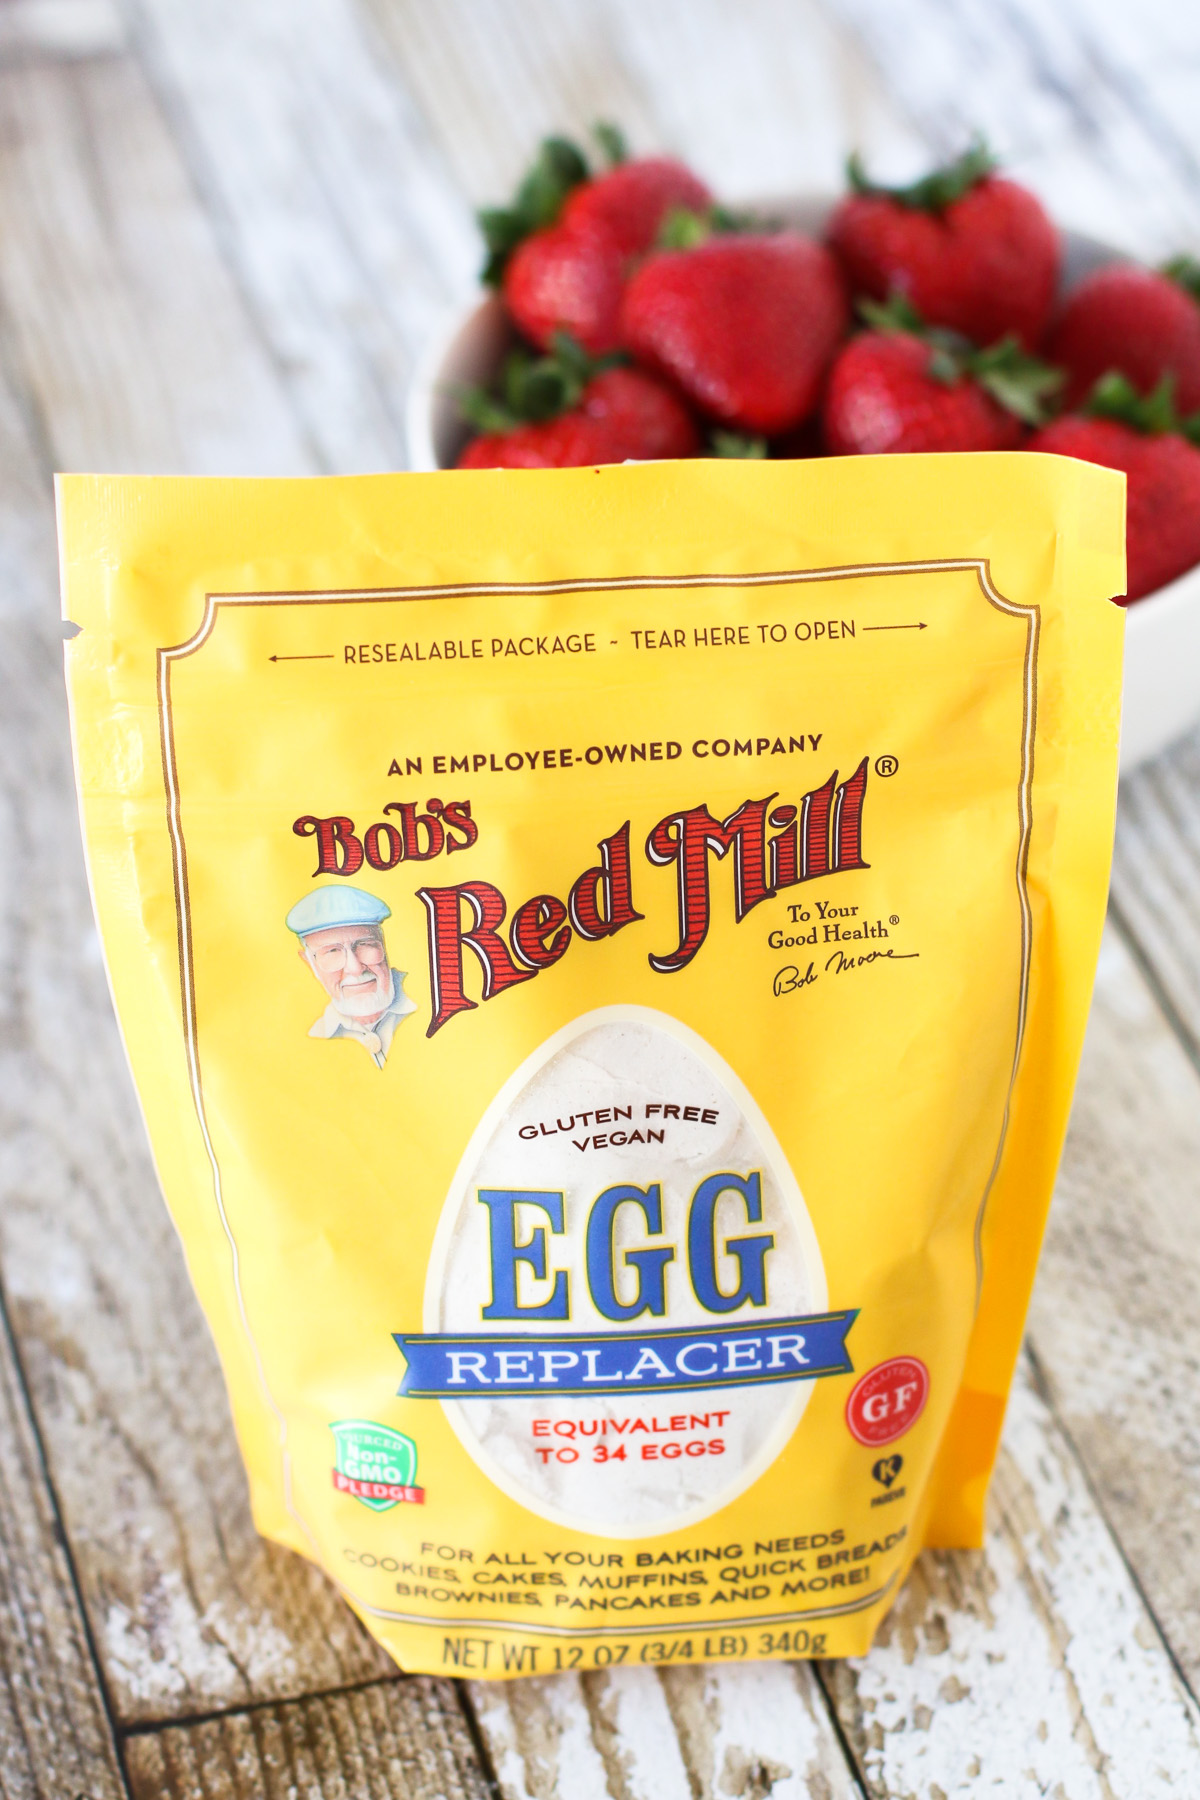 Bob's Red Mill Egg Replacer. Makes these gluten free vegan double chocolate pancakes oh so light and fluffy!